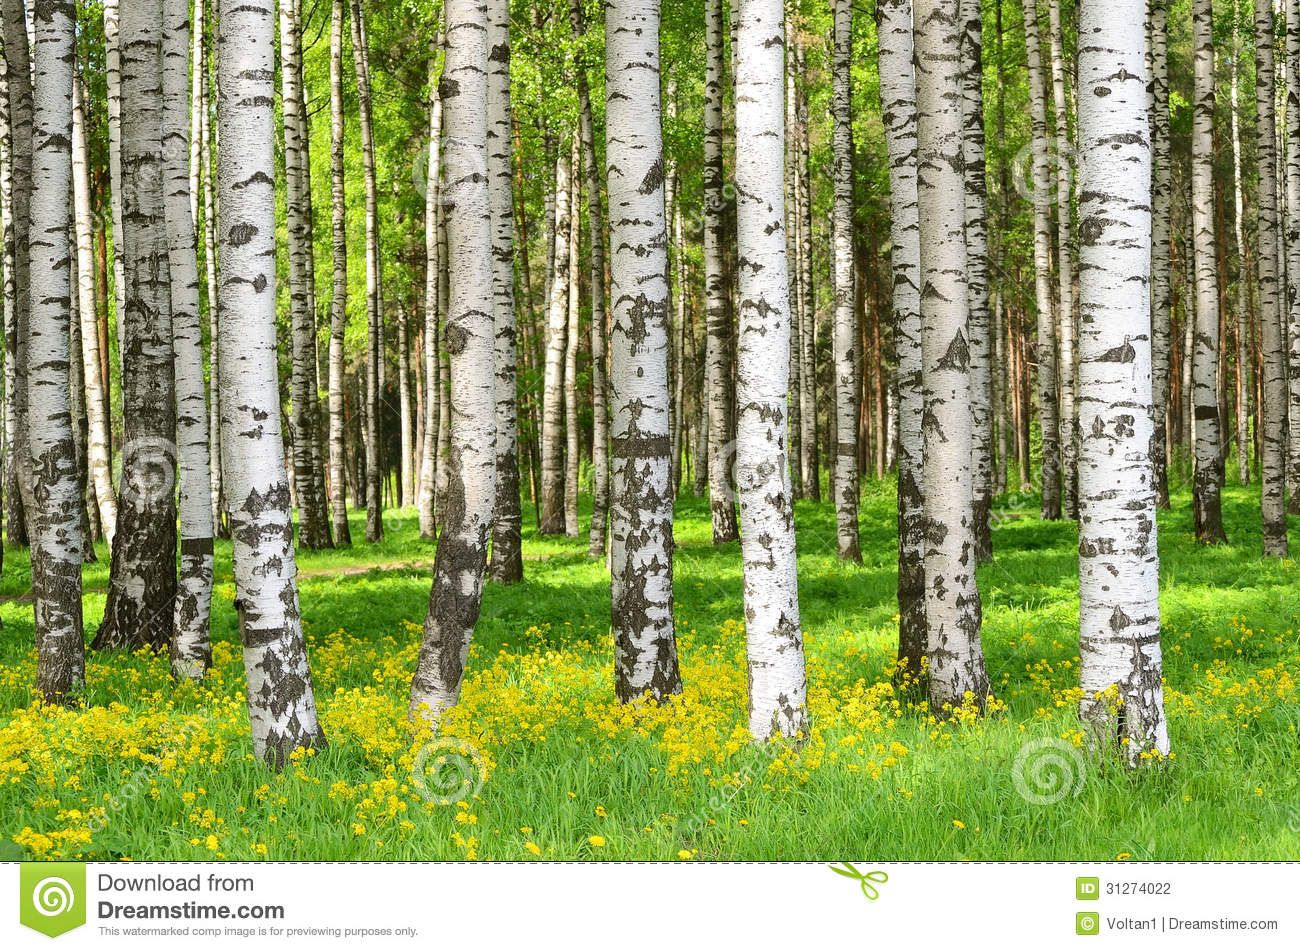 Images Of Birch Trees In The Spring Birch Trees In The Spring